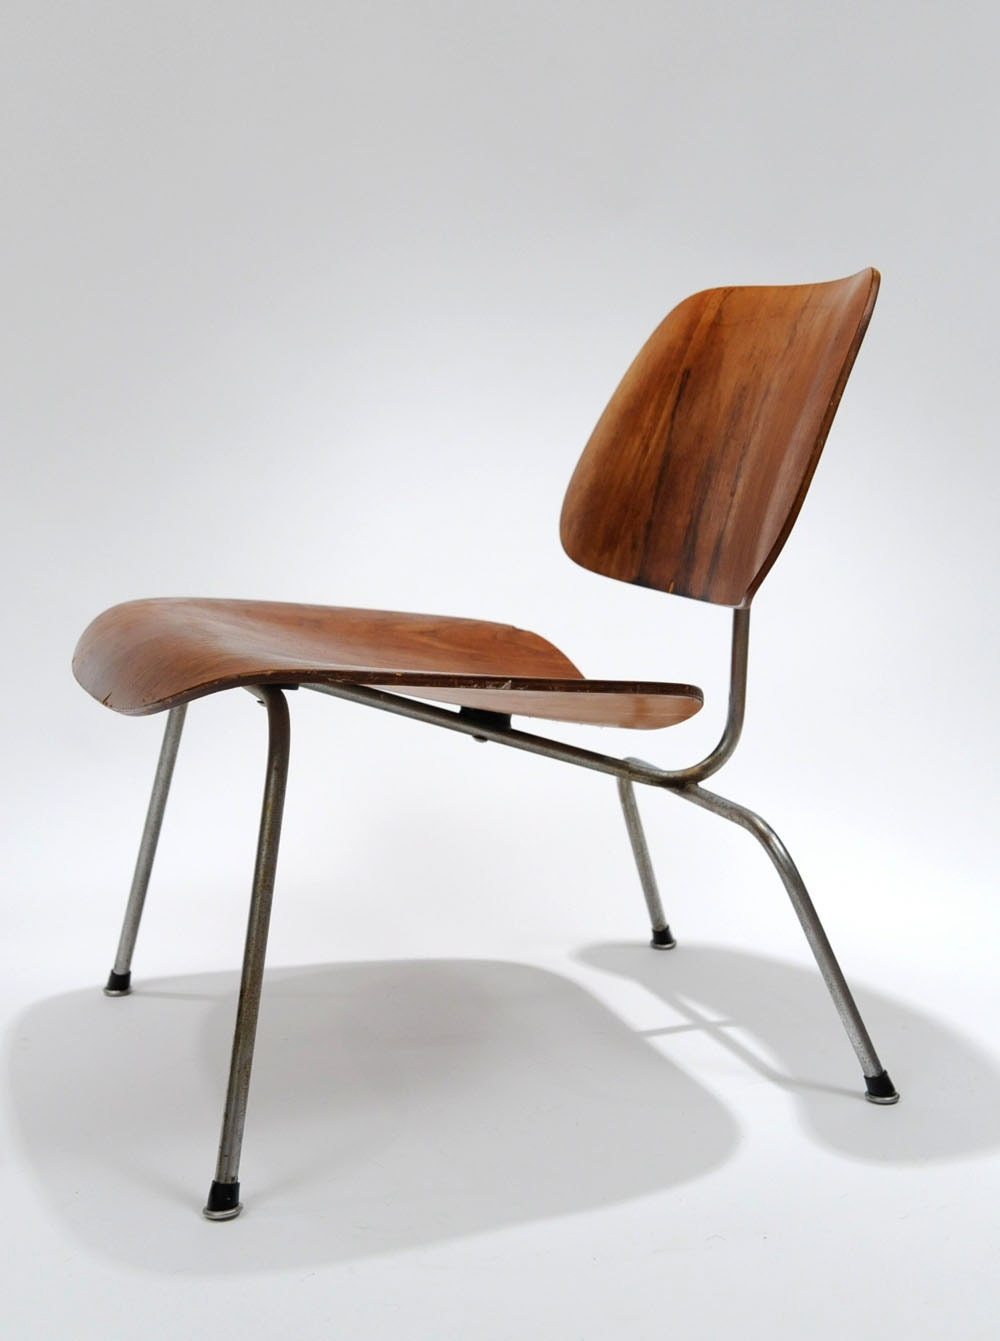 Original Charles Amp Ray Eames Lcm Chair From The 1950s Herman